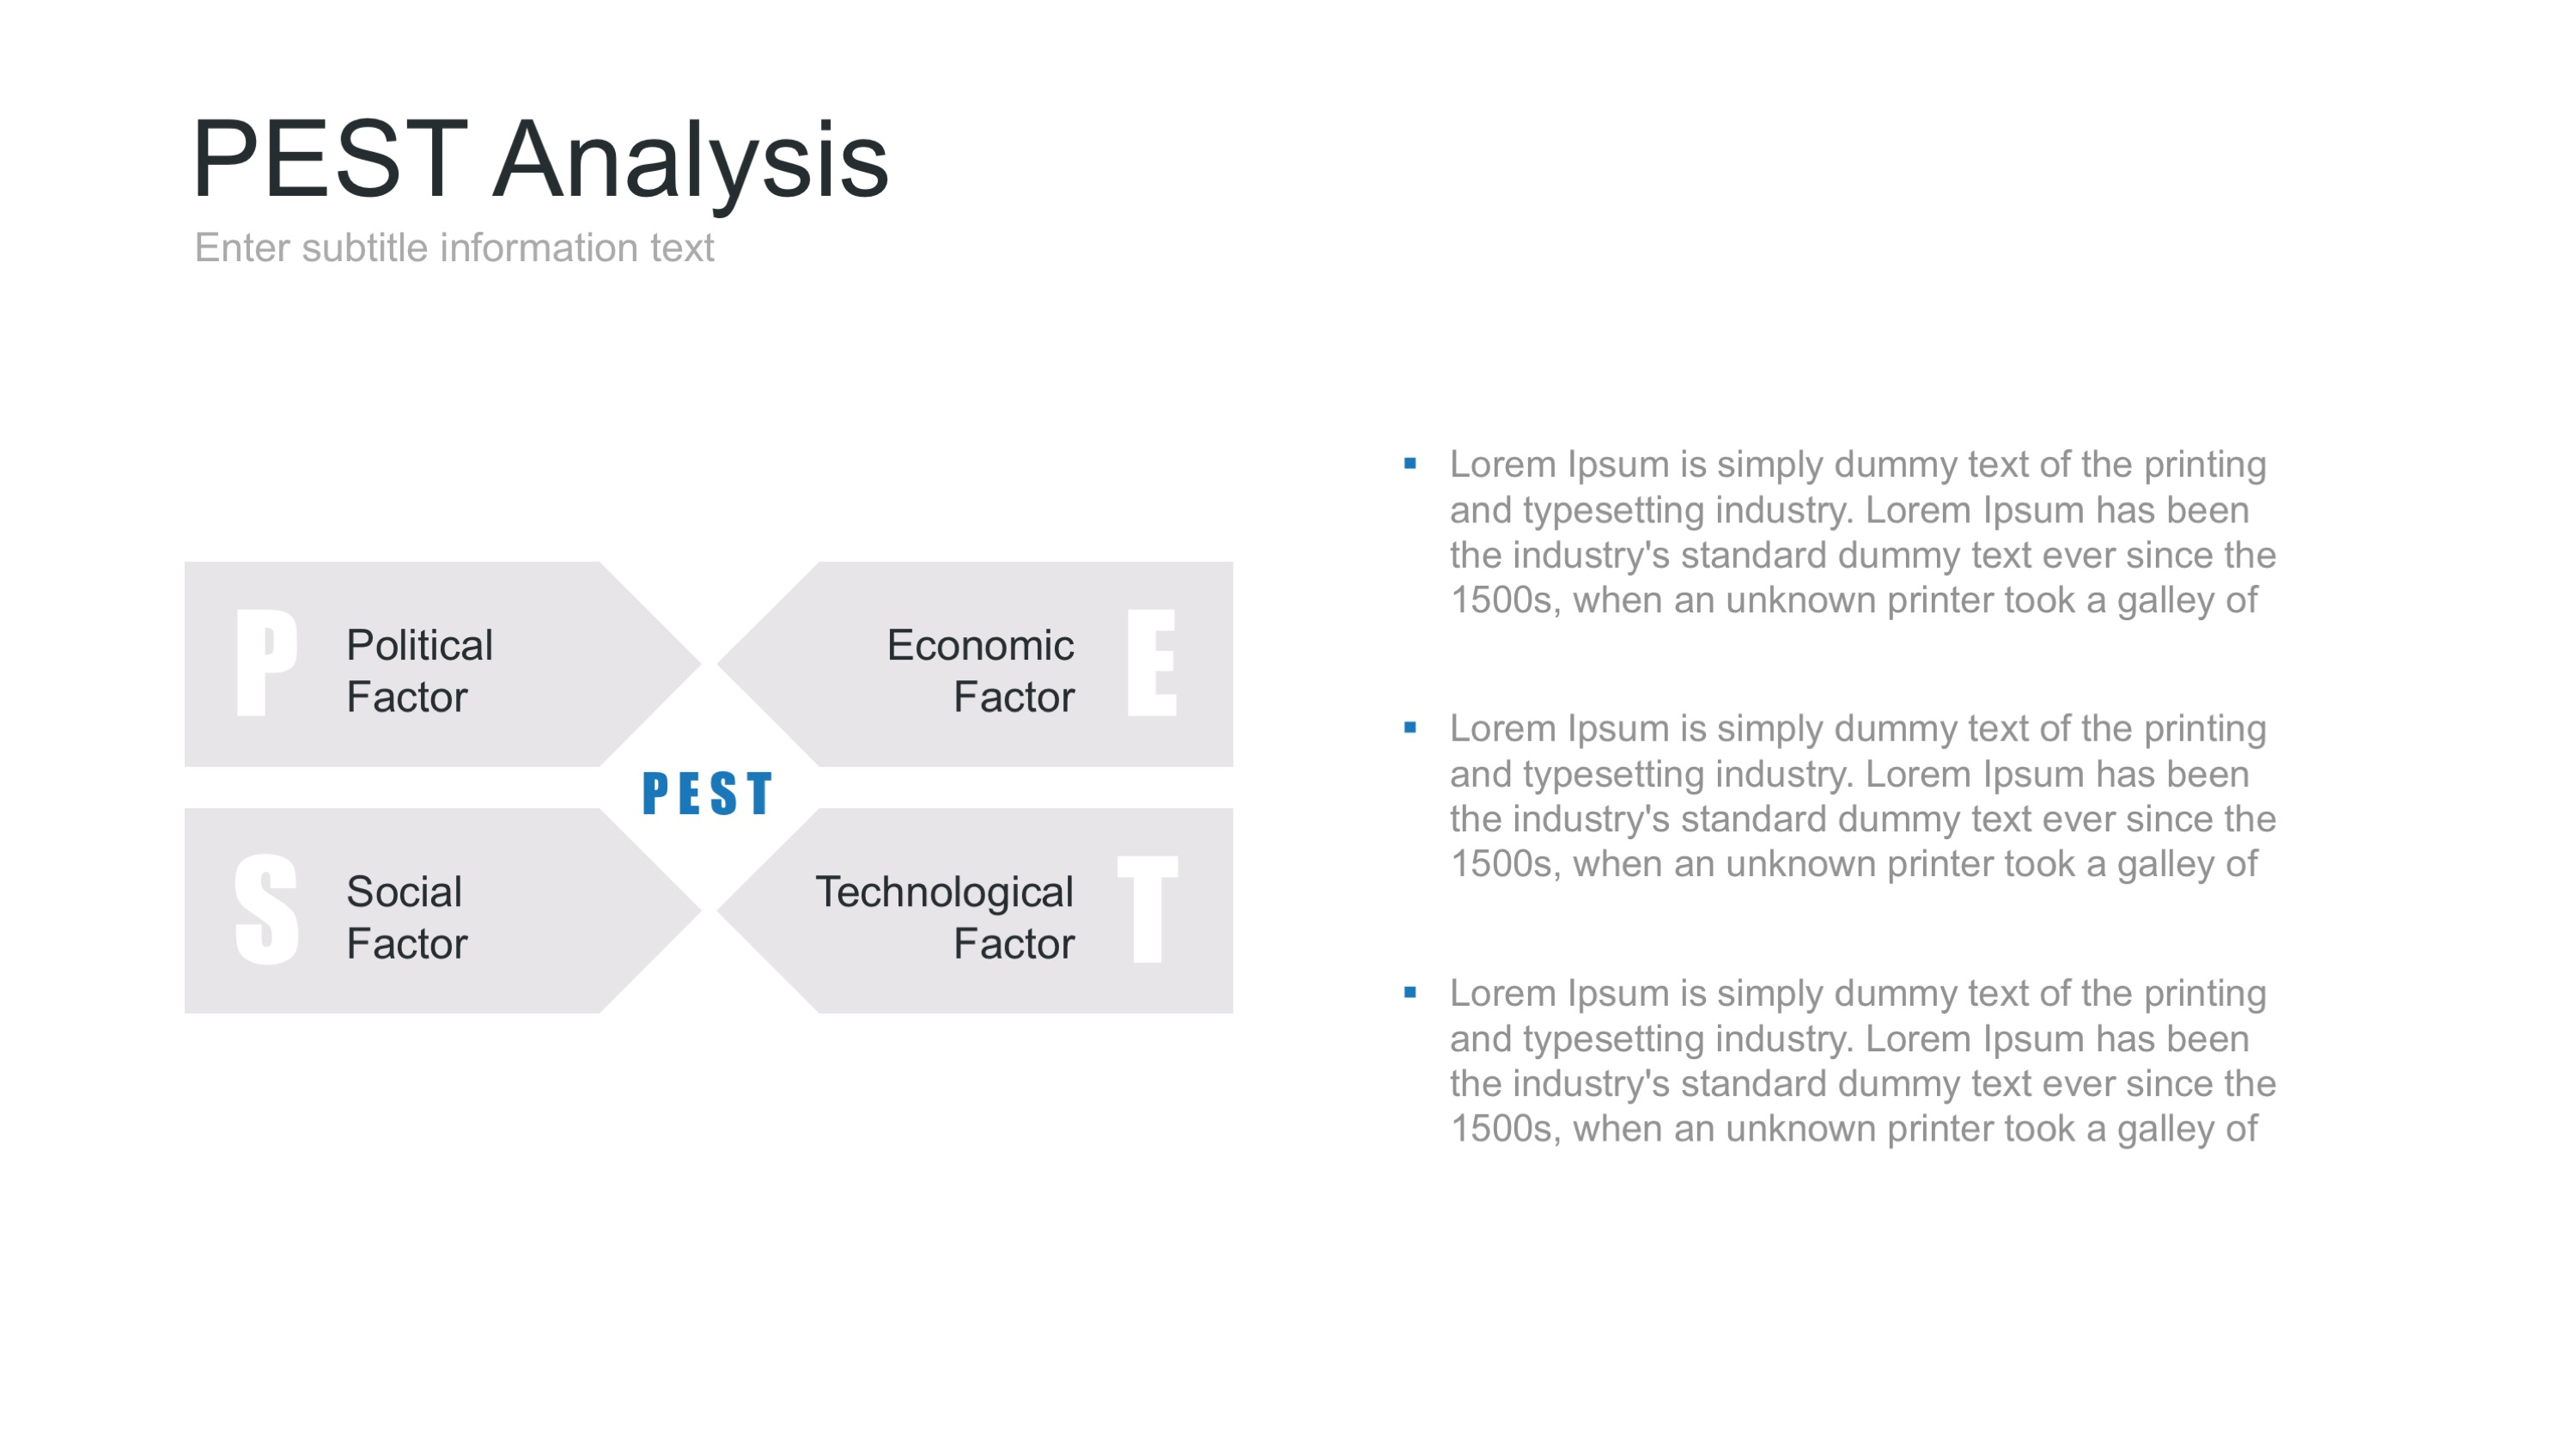 bat pest analysis Pest analysis of tobacco political in pakistan, ministry of health has made various efforts to discourage the smoking in pakistan because it's injurious for health.